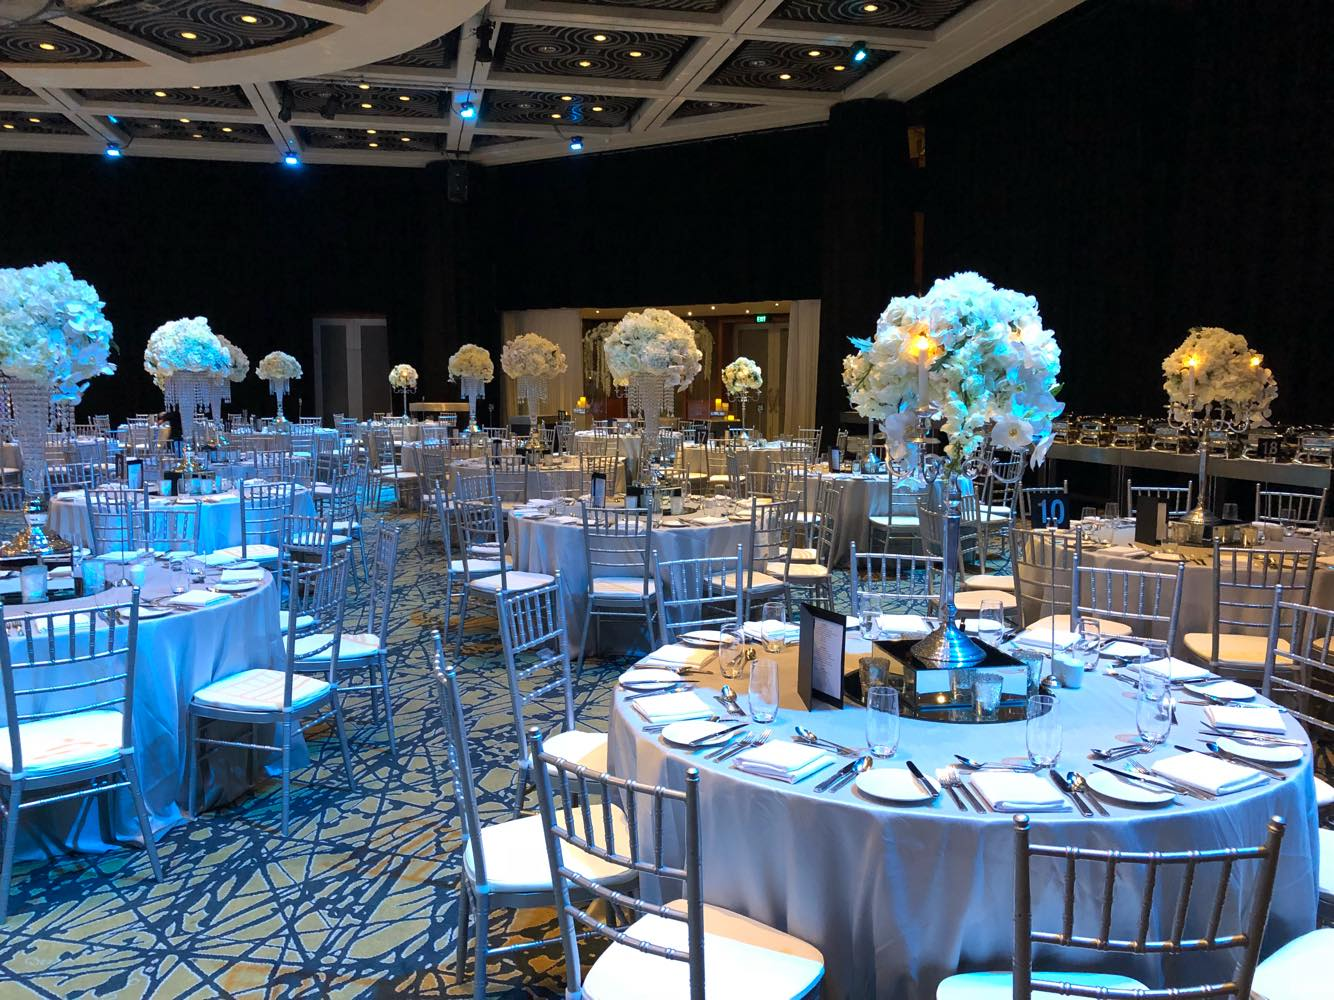 Wedding reception in Grand Ballroom at Hyatt Regency Perth